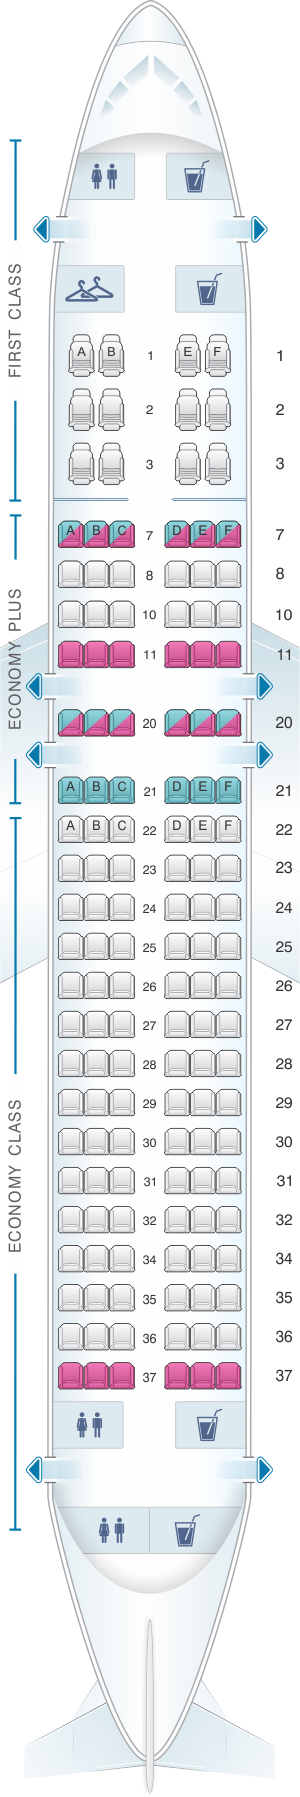 Seat map for United Airlines Airbus A320 - version 1